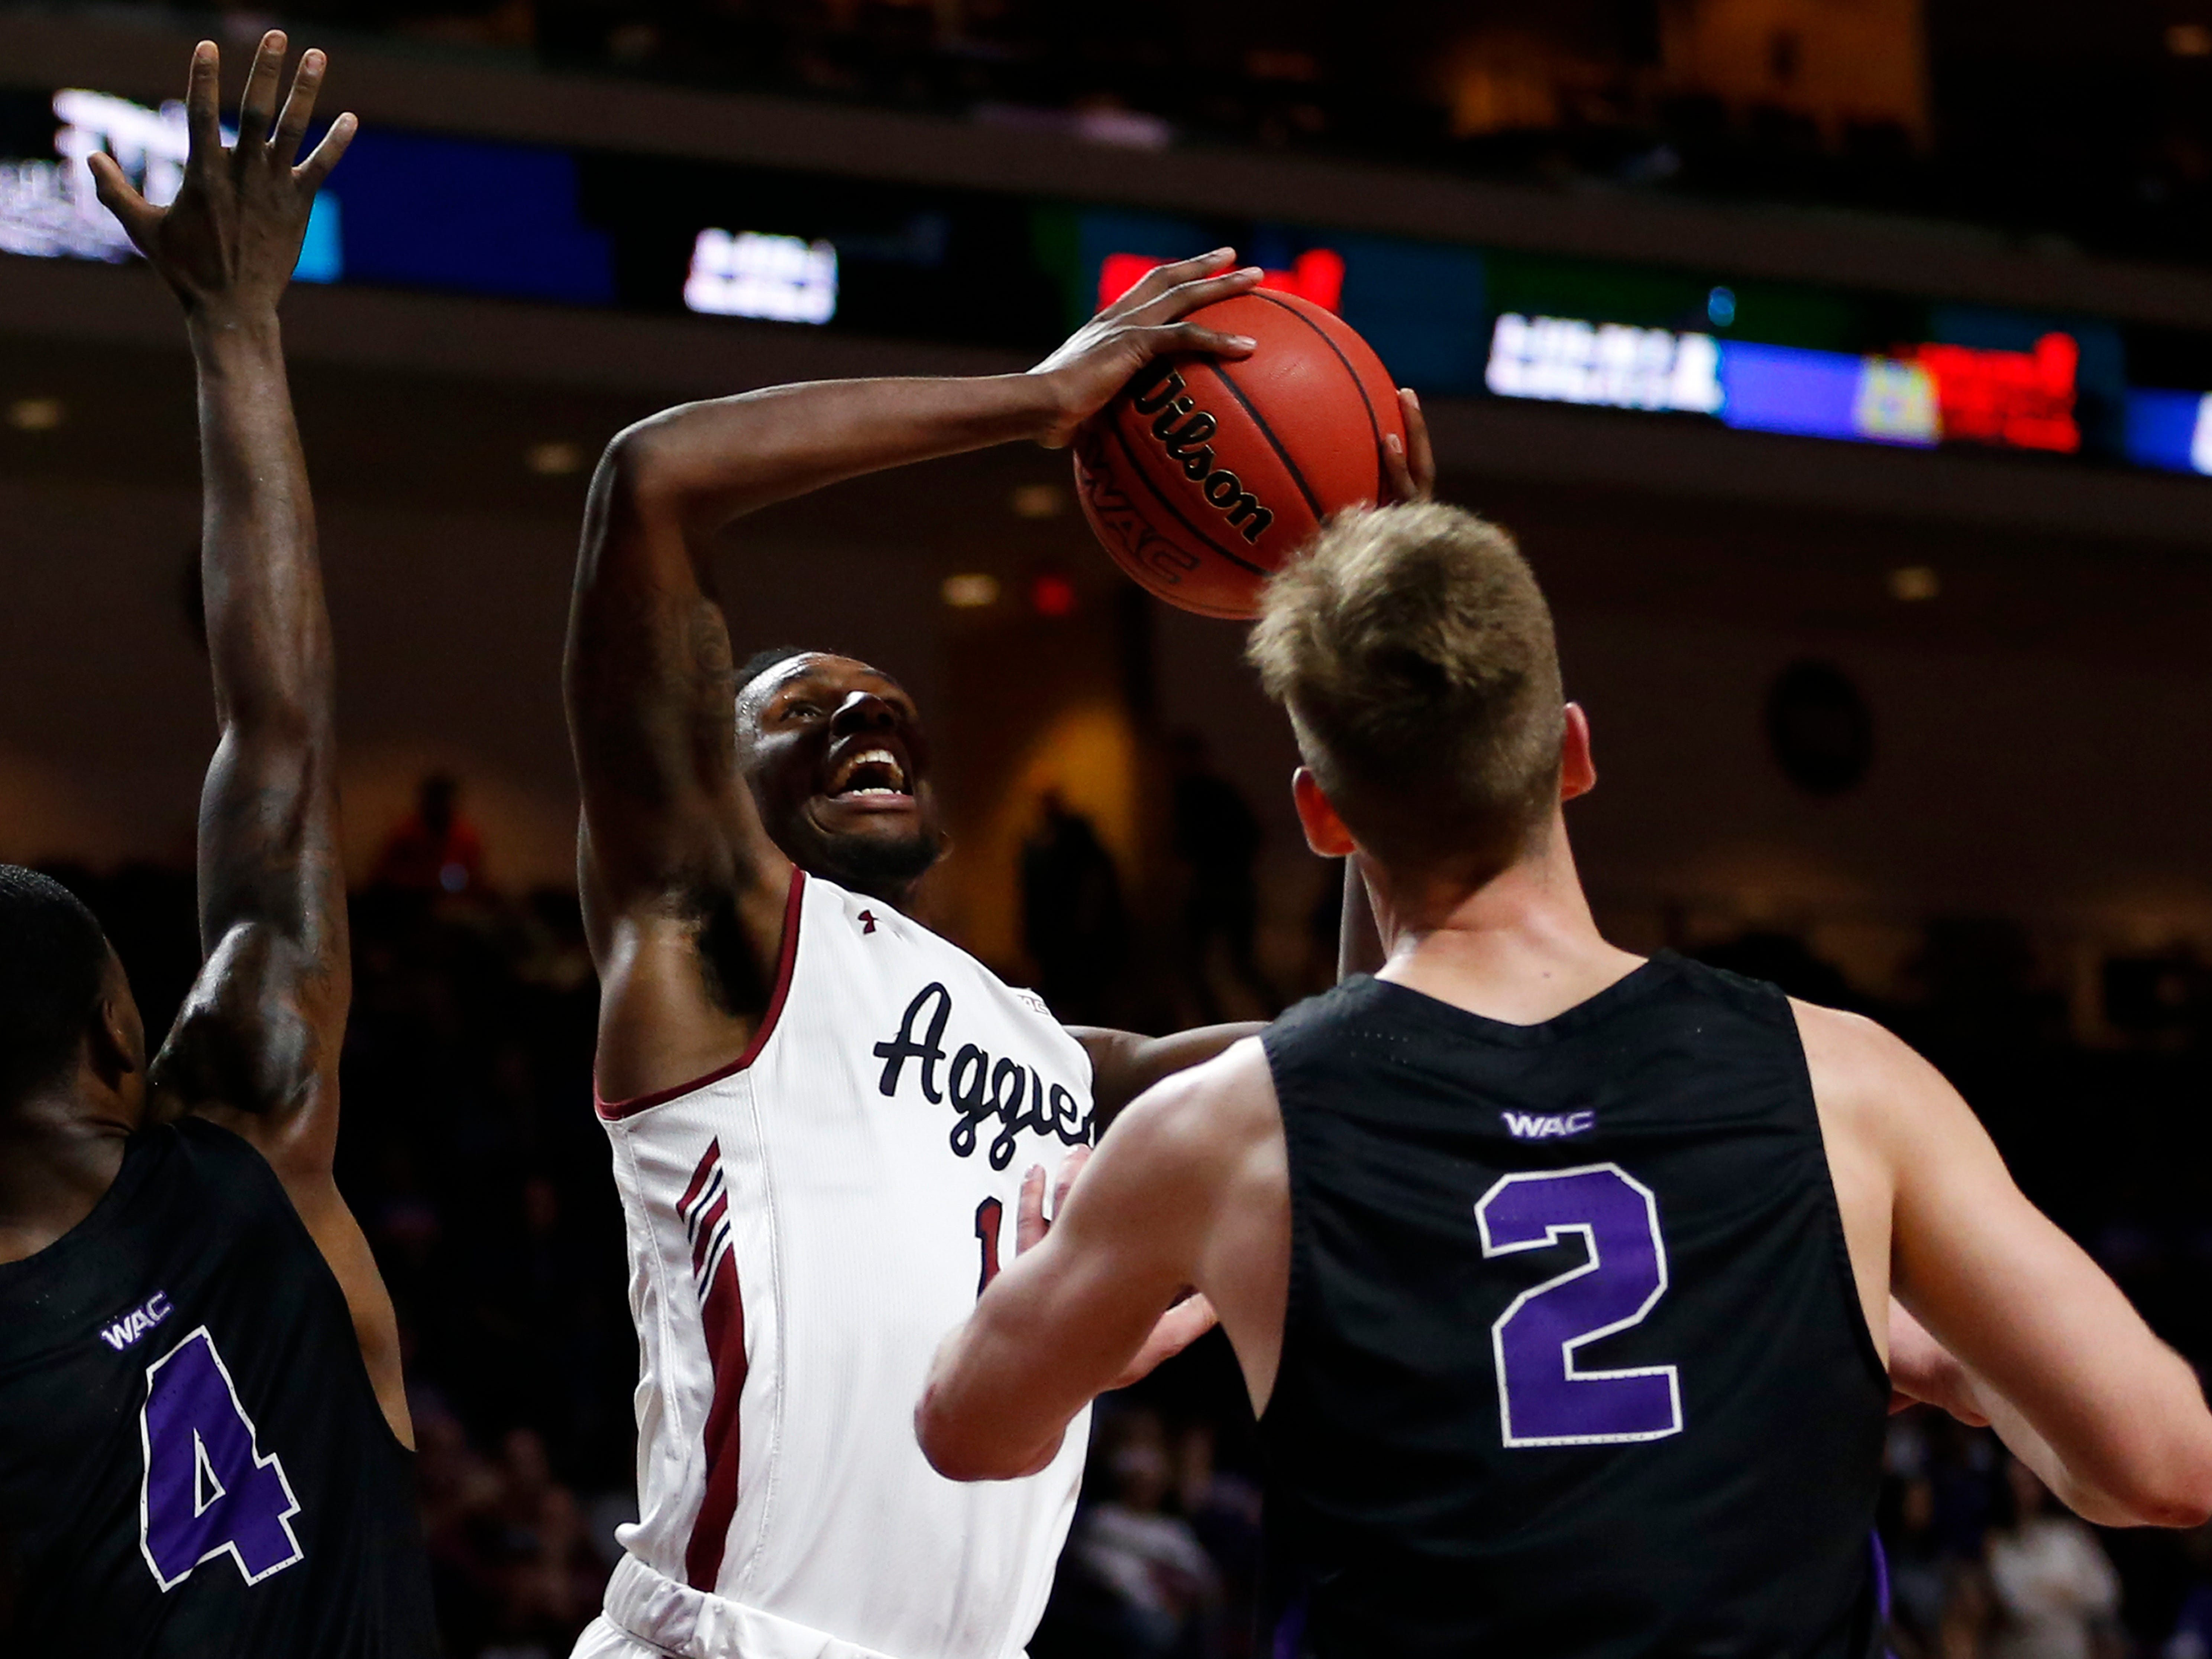 New Mexico State forward C.J. Bobbitt (13) puts up the ball between Grand Canyon's Oscar Frayer (4) and Trey Drechsel (4) during an NCAA college basketball game for the Western Athletic Conference men's tournament championship Saturday, March 16, 2019, in Las Vegas. New Mexico State beat Grand Canyon 89-57.